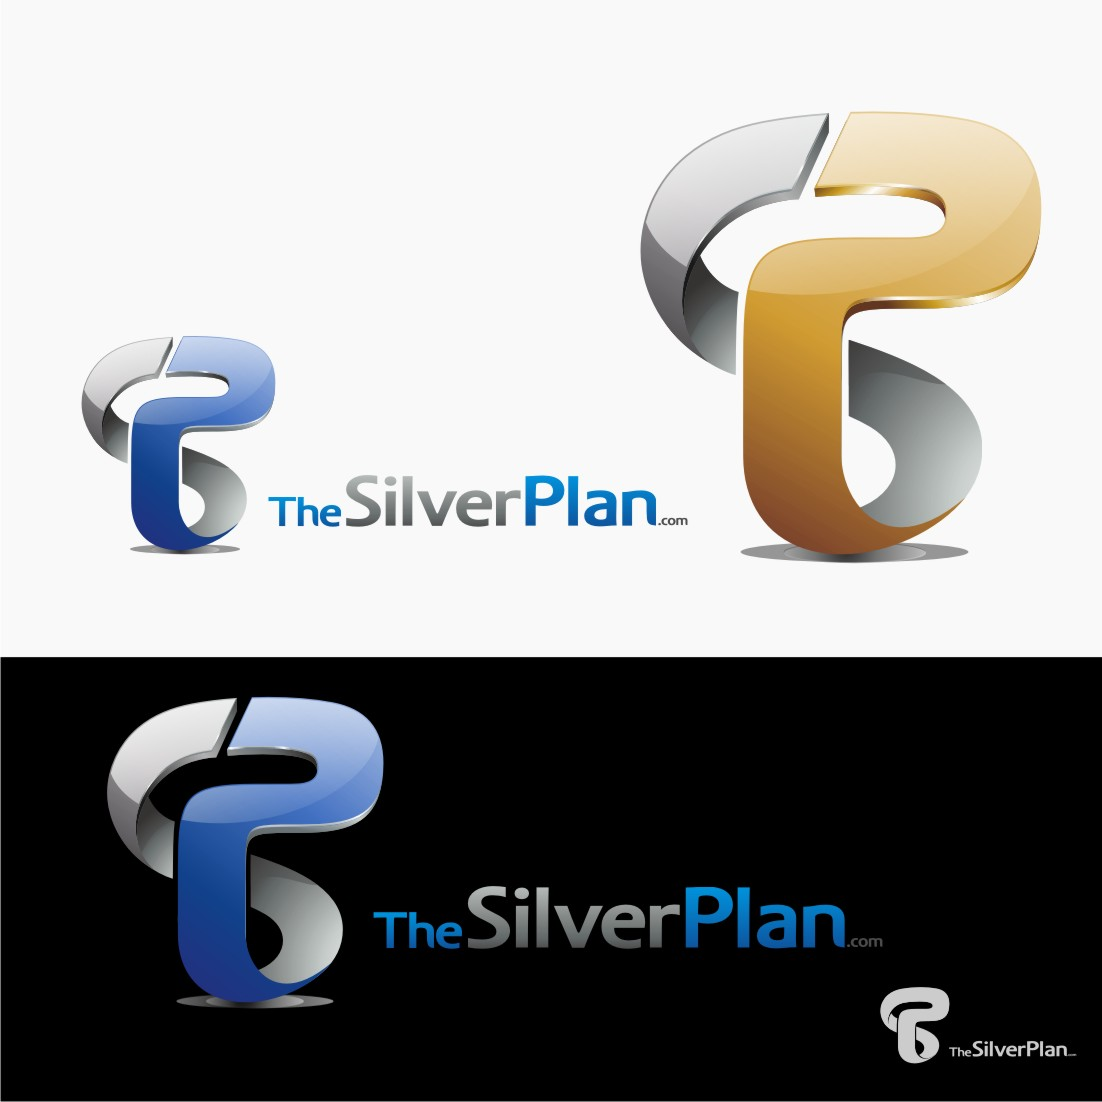 Logo Design by graphicleaf - Entry No. 73 in the Logo Design Contest New Logo Design for TheSilverPlan.com.